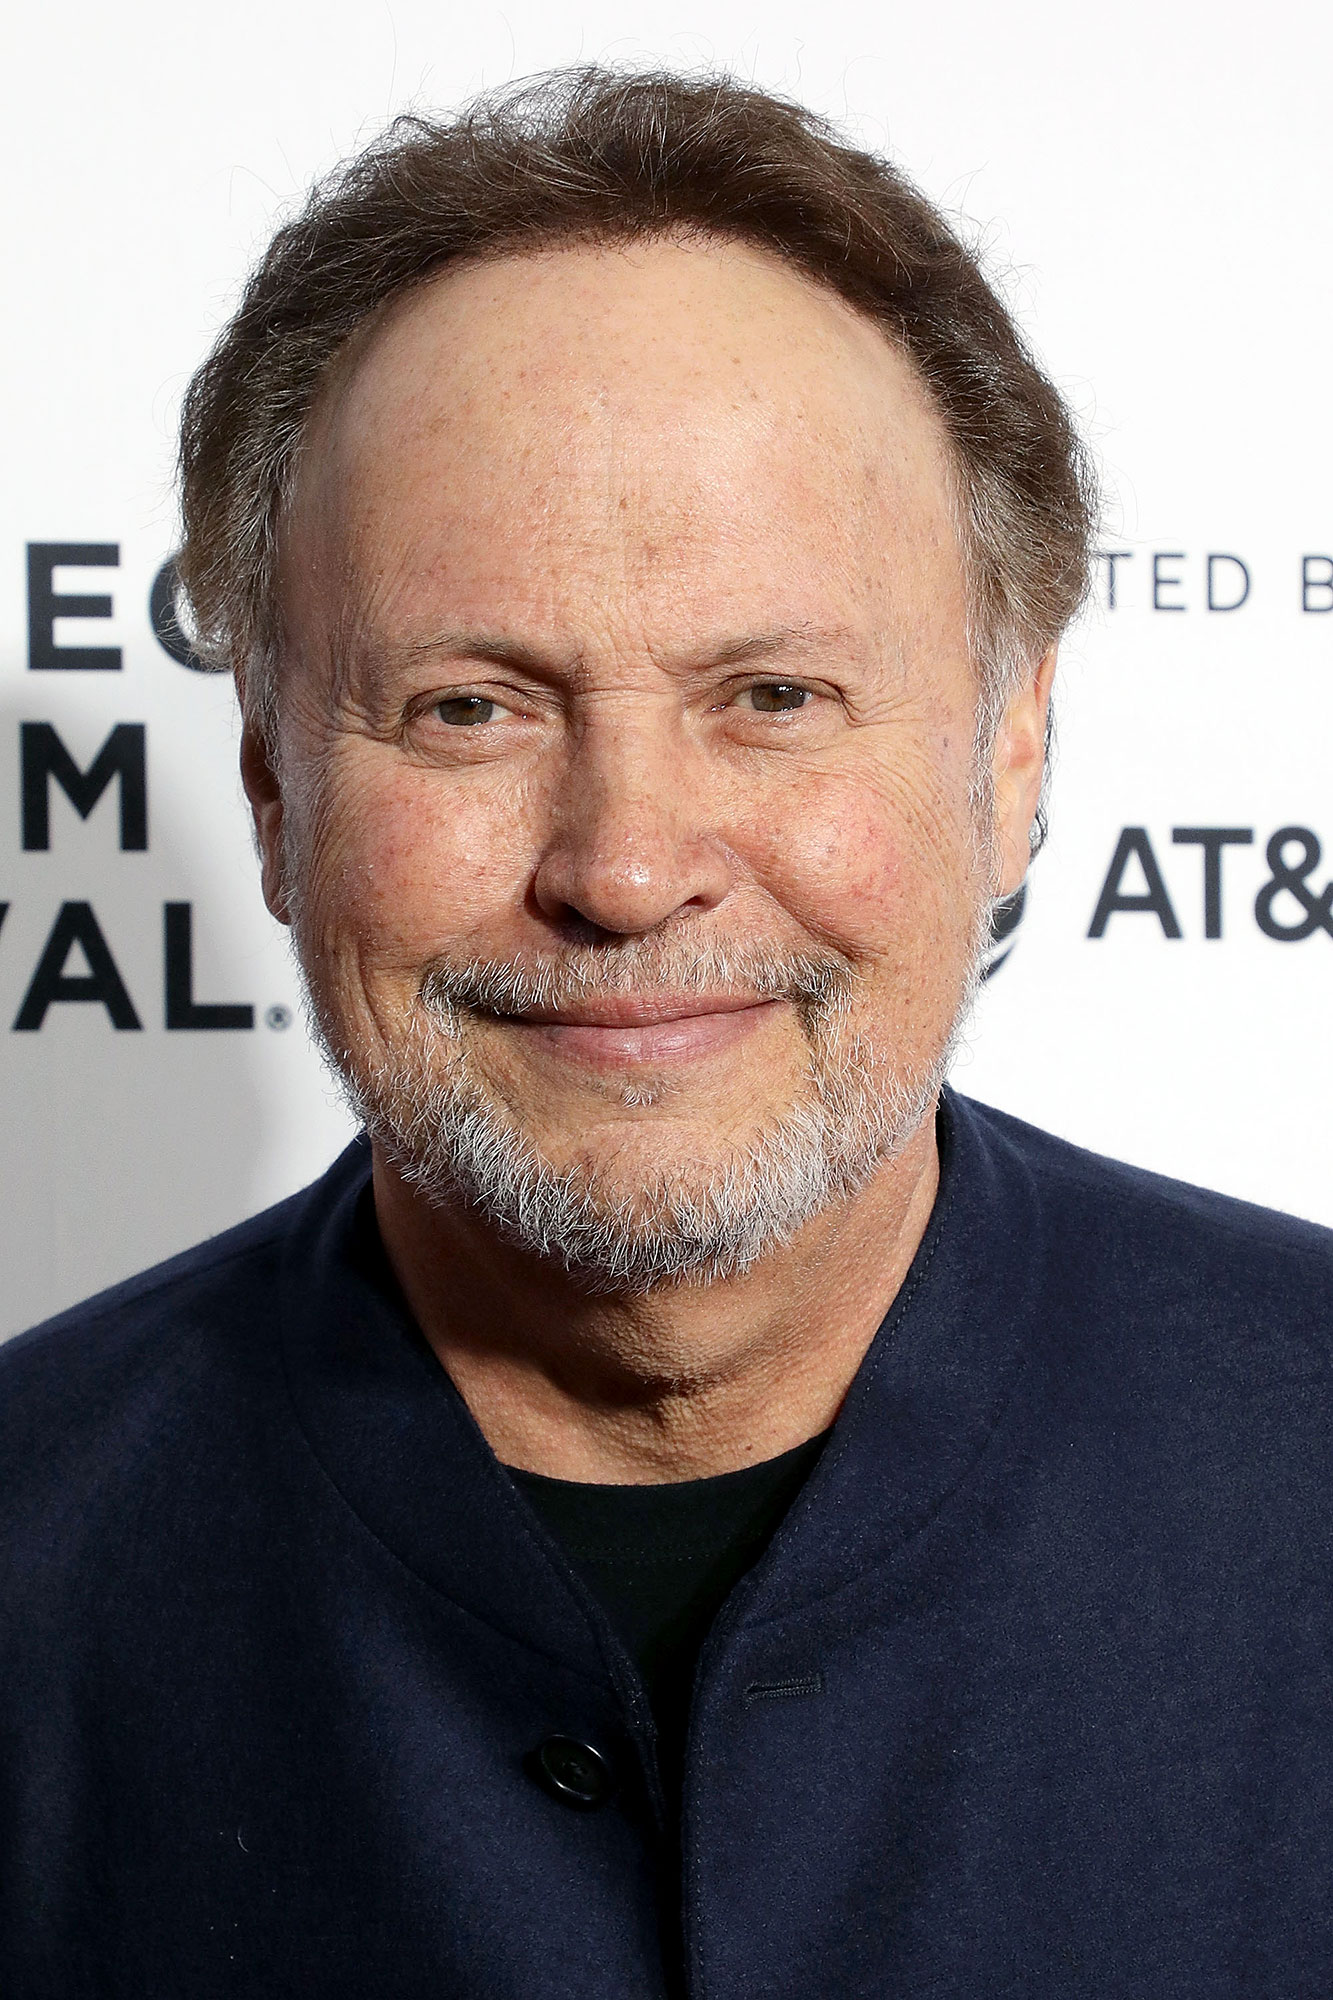 Billy Crystal Teachers Before Fame - Crystal was born in New York City and eventually returned to perform in a comedy trio with his friends. The Comedians star was also working as a substitute teacher on Long Island, New York, at the time, where he remained until his comedy career took off.